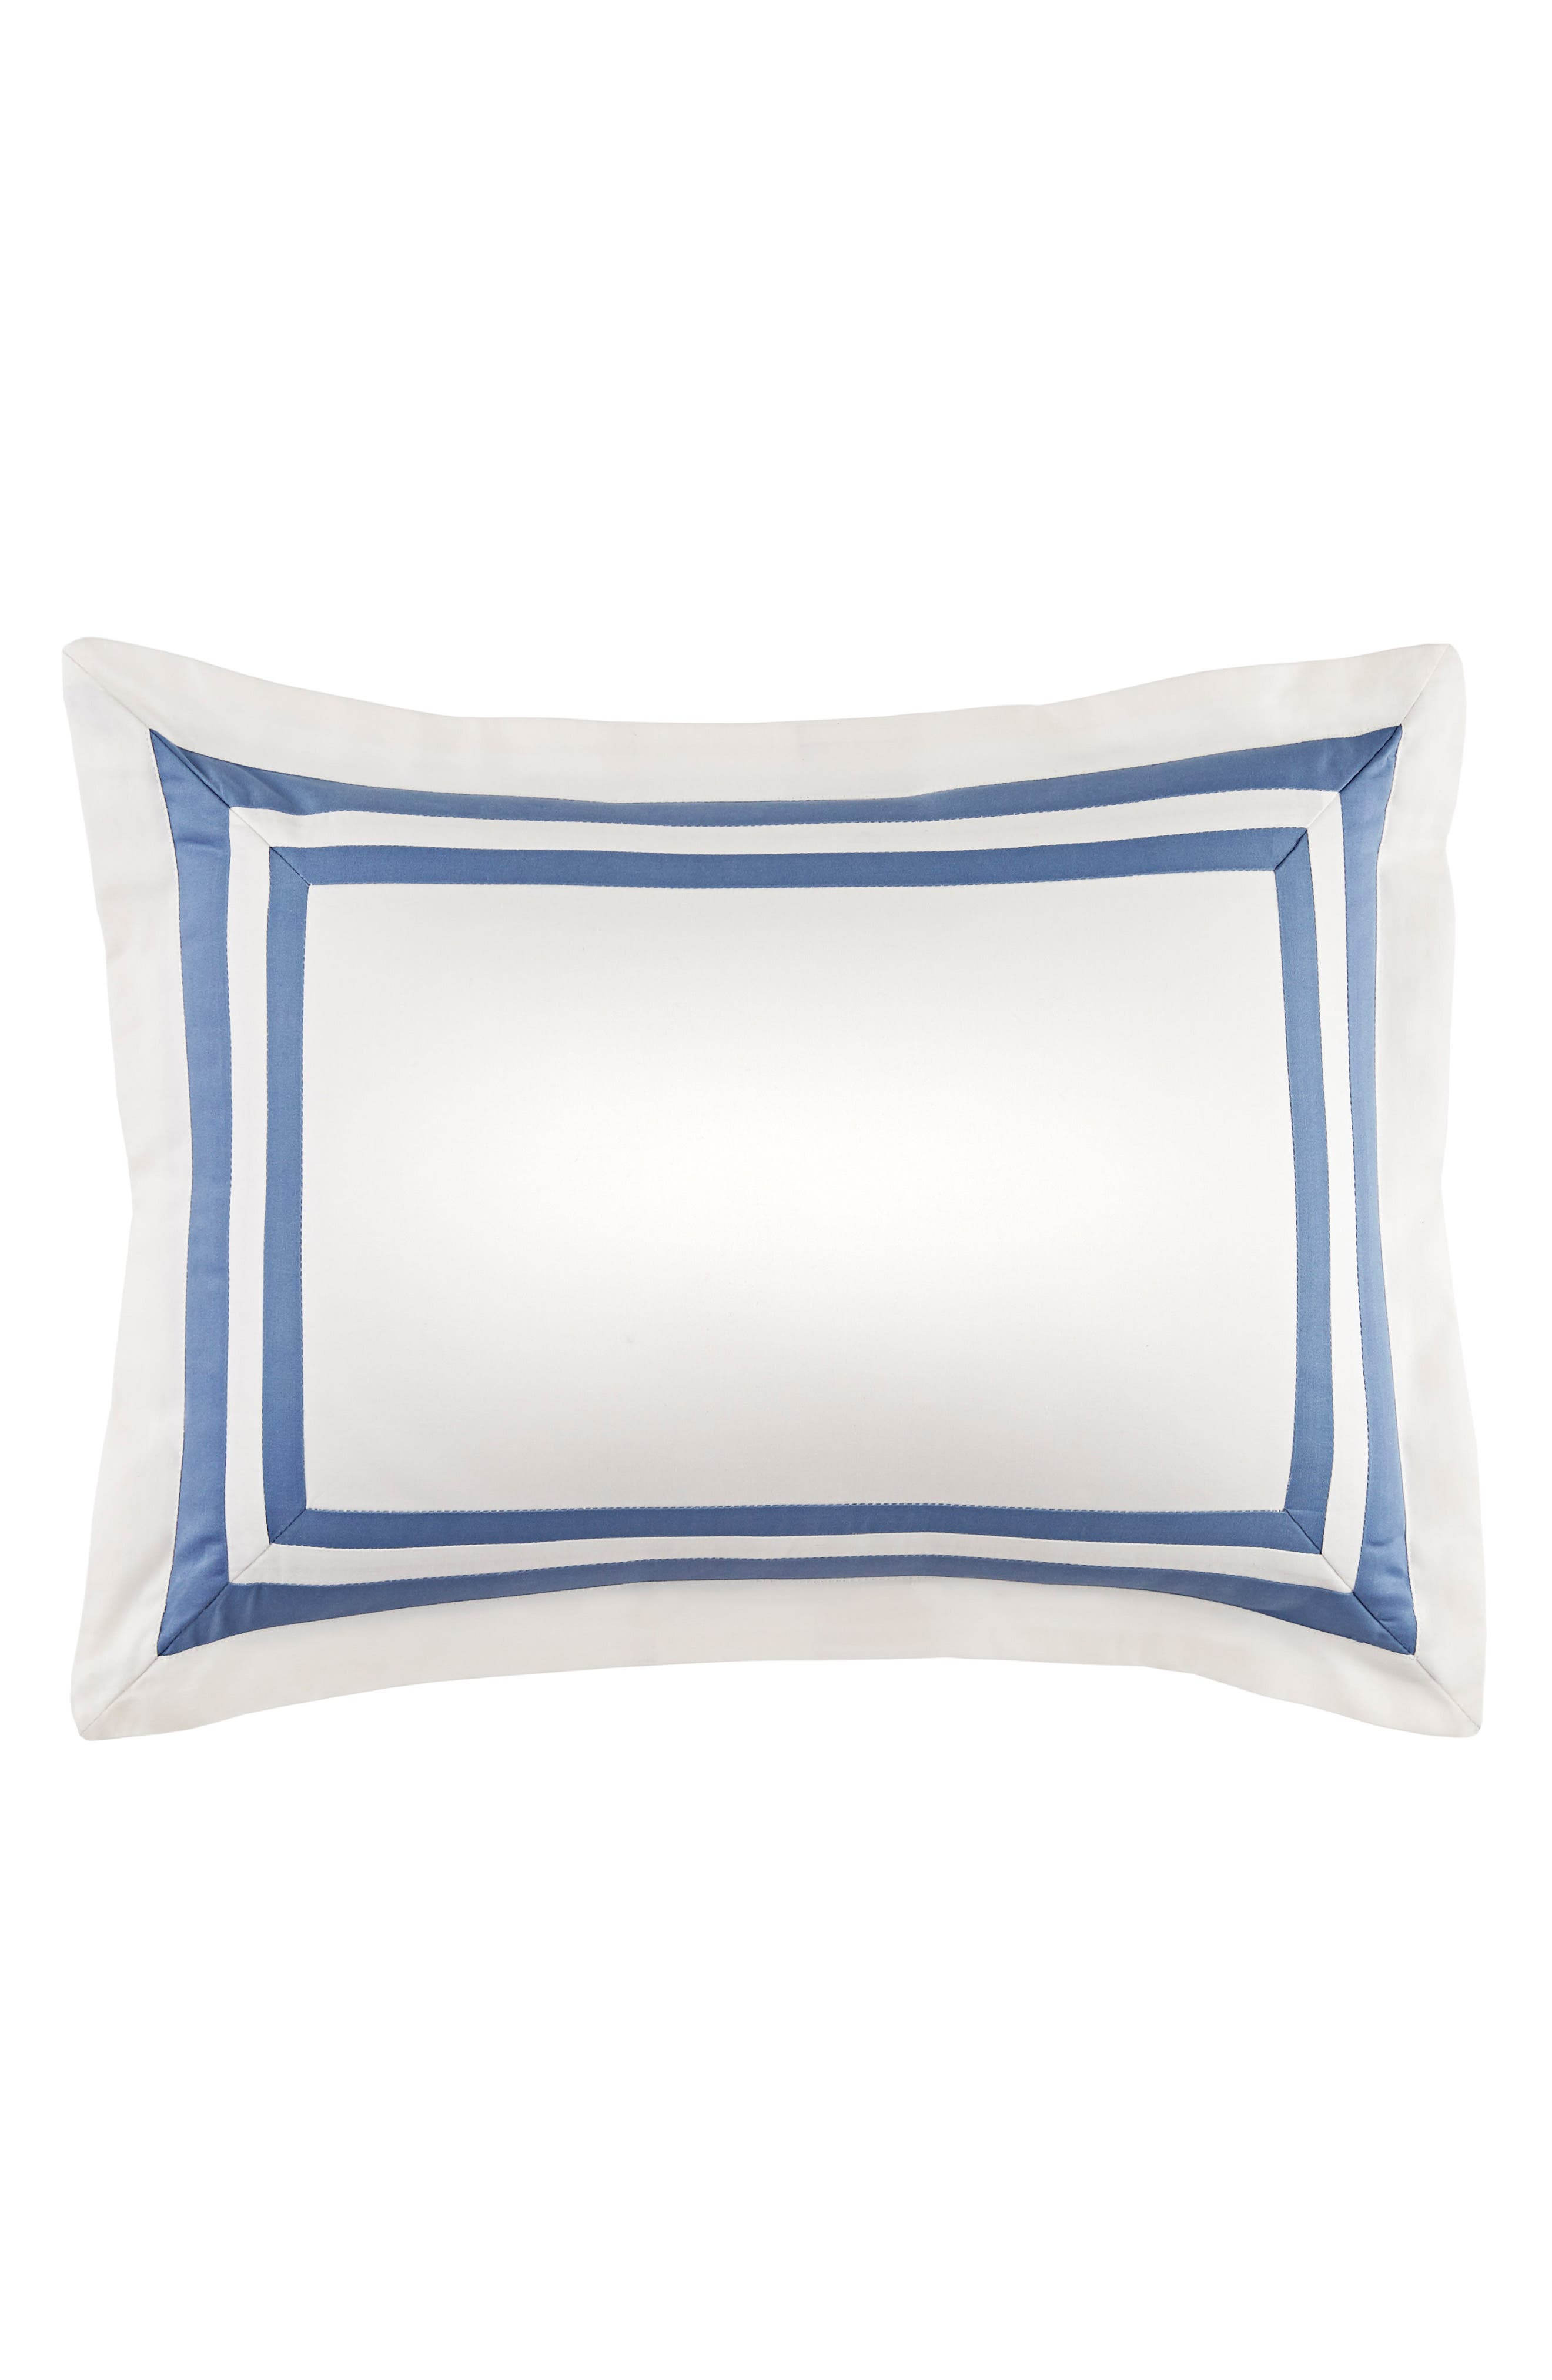 Pieced Accent Pillow,                             Main thumbnail 1, color,                             400